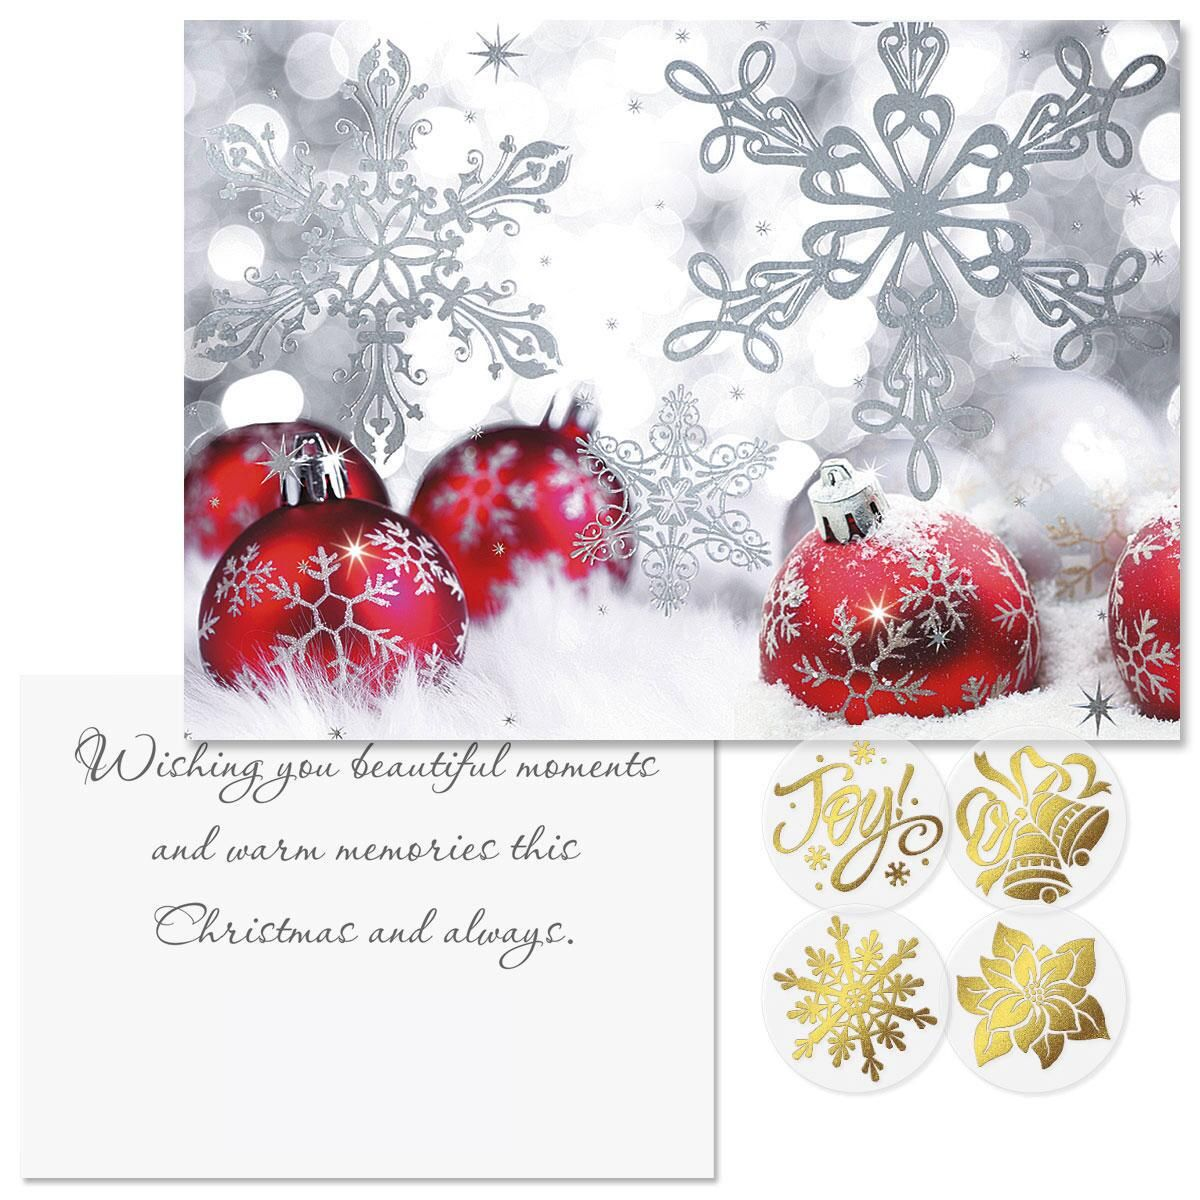 Silver Shimmer Foil Christmas Cards | Colorful Images